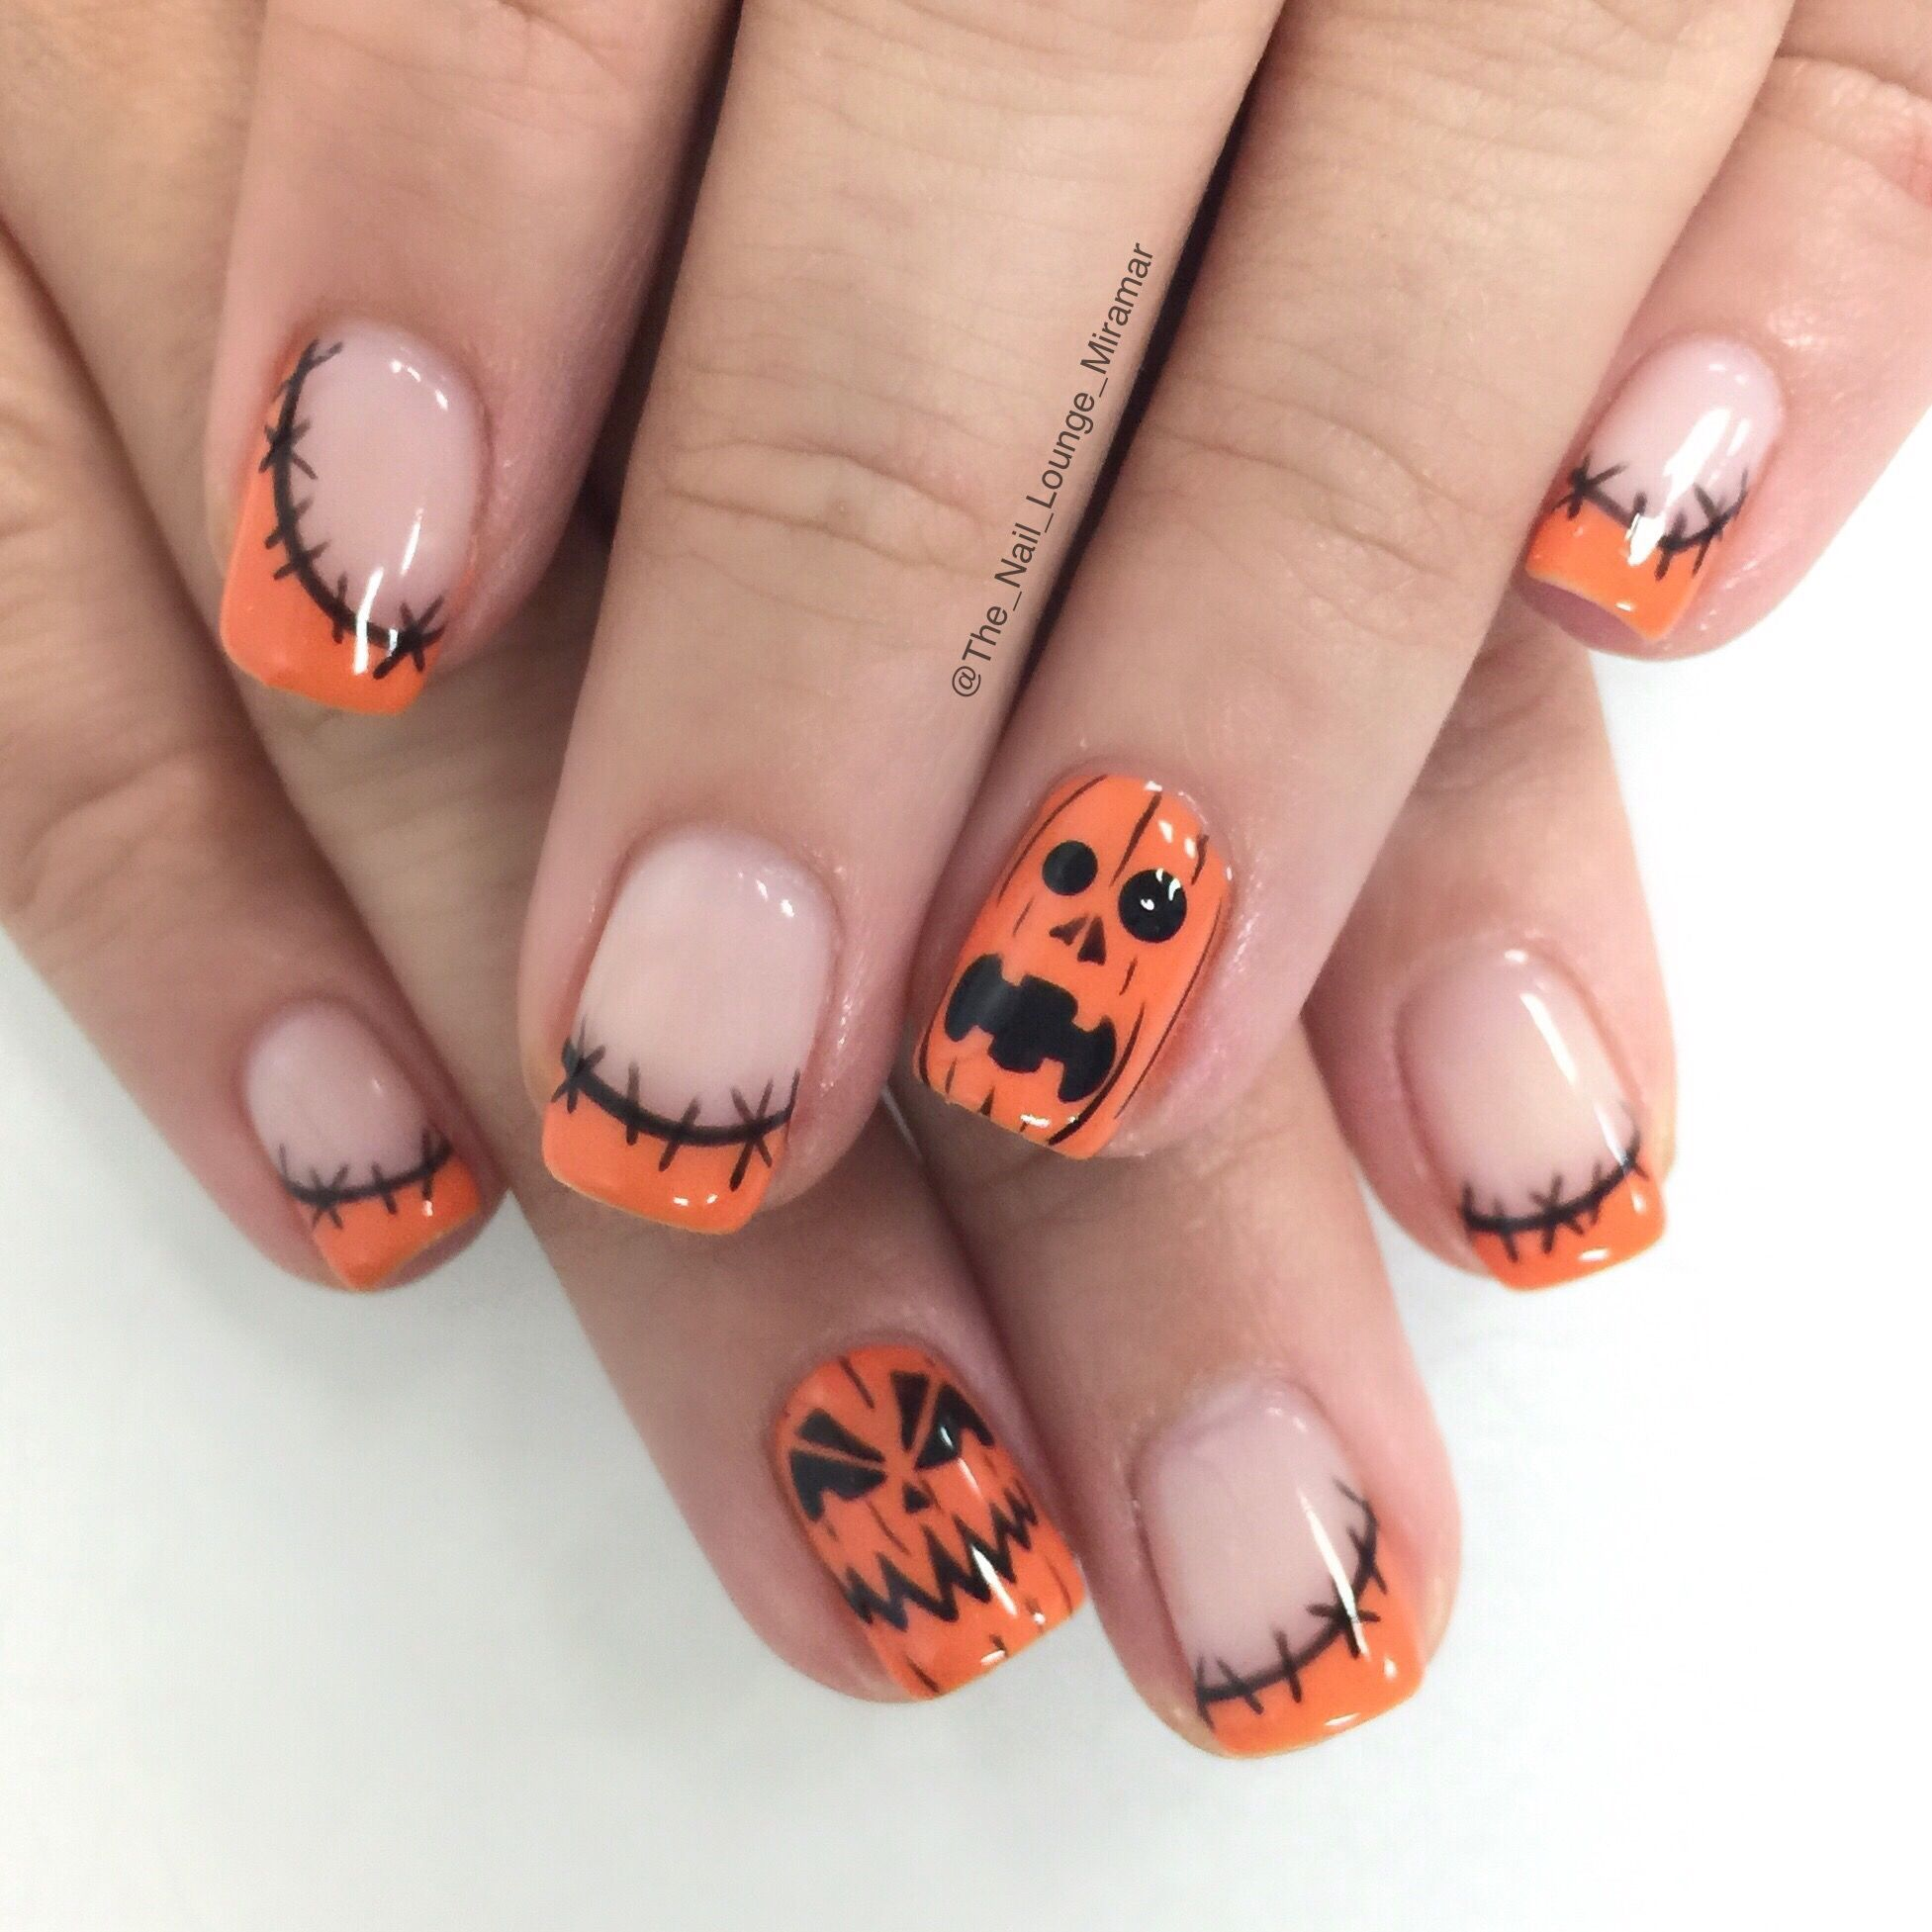 Pumpkin Nail Art Design